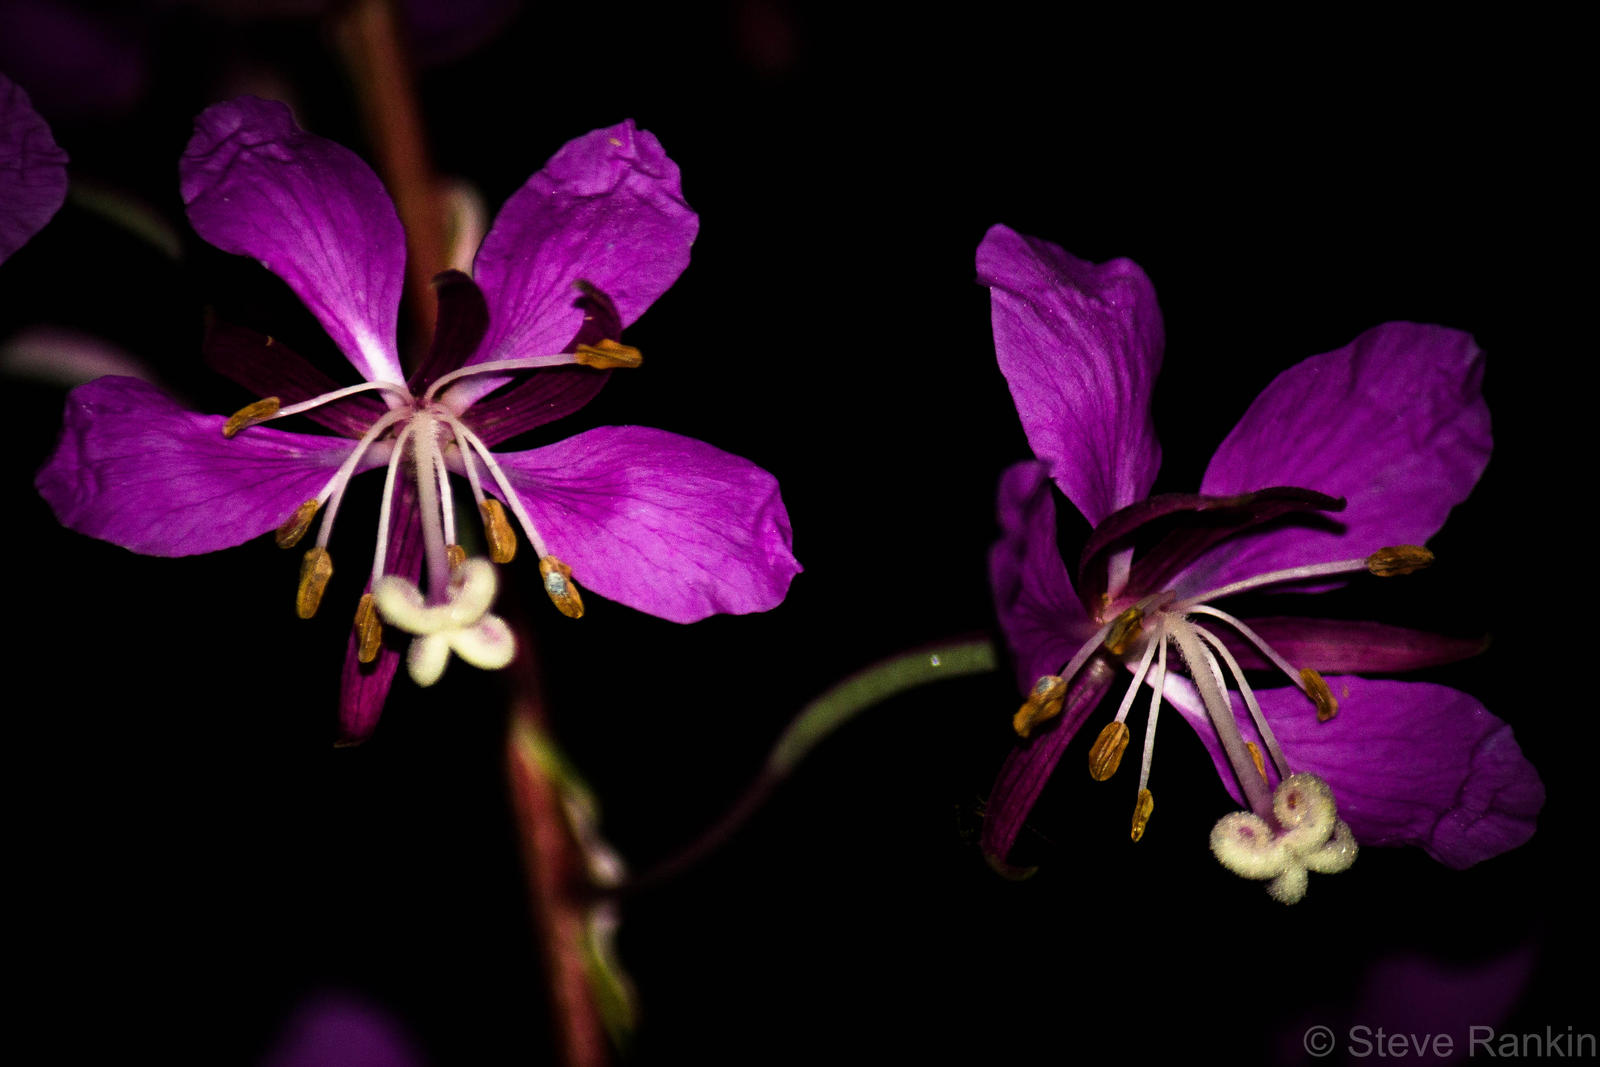 Night flowers by steverankin on deviantart for A flower that only blooms at night